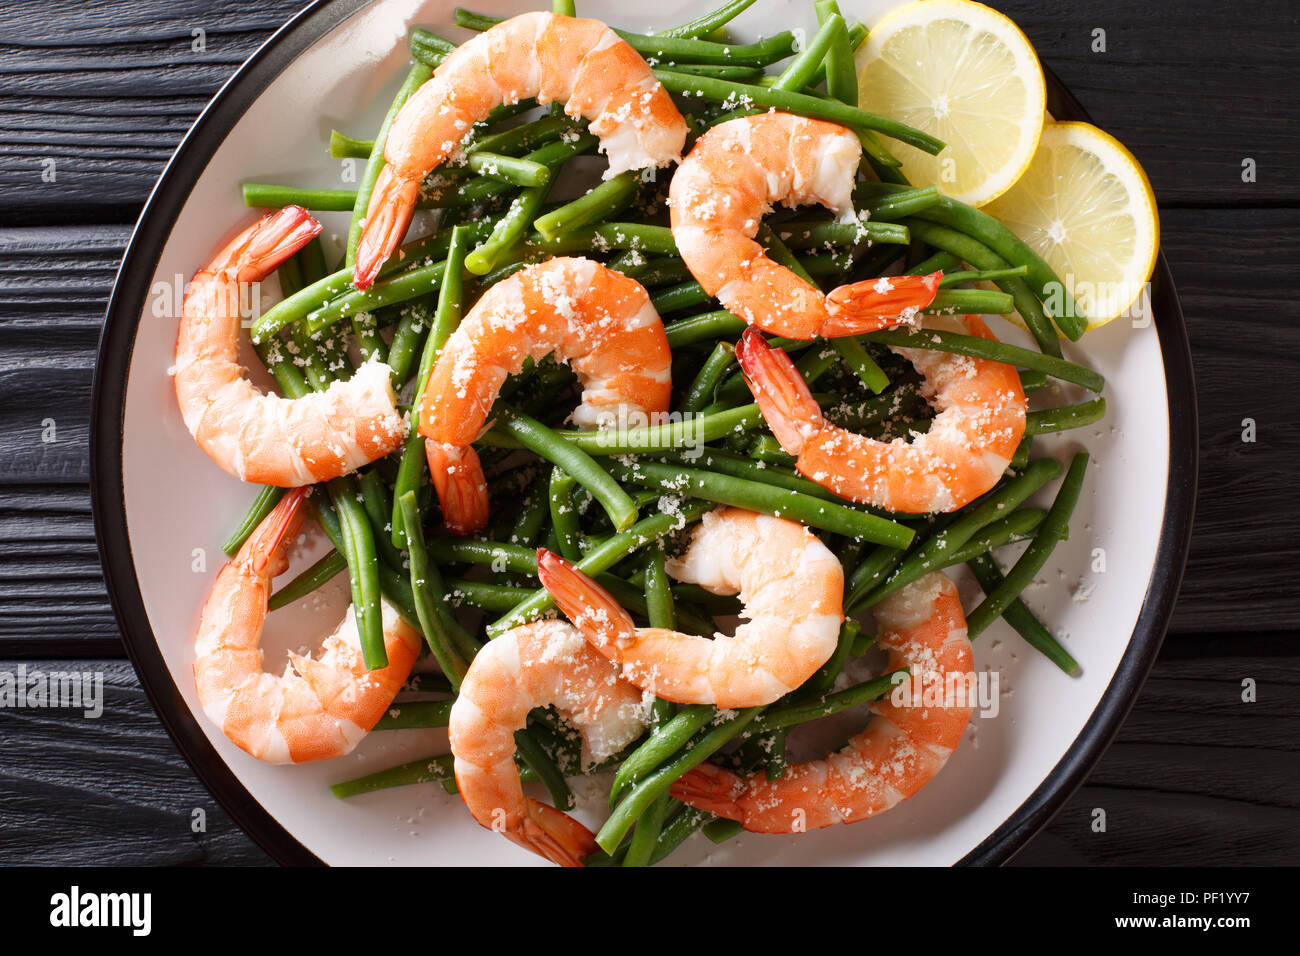 Stir fry prawns with green beans, cheese and lemon close-up on a plate on the table. horizontal top view from above - Stock Image